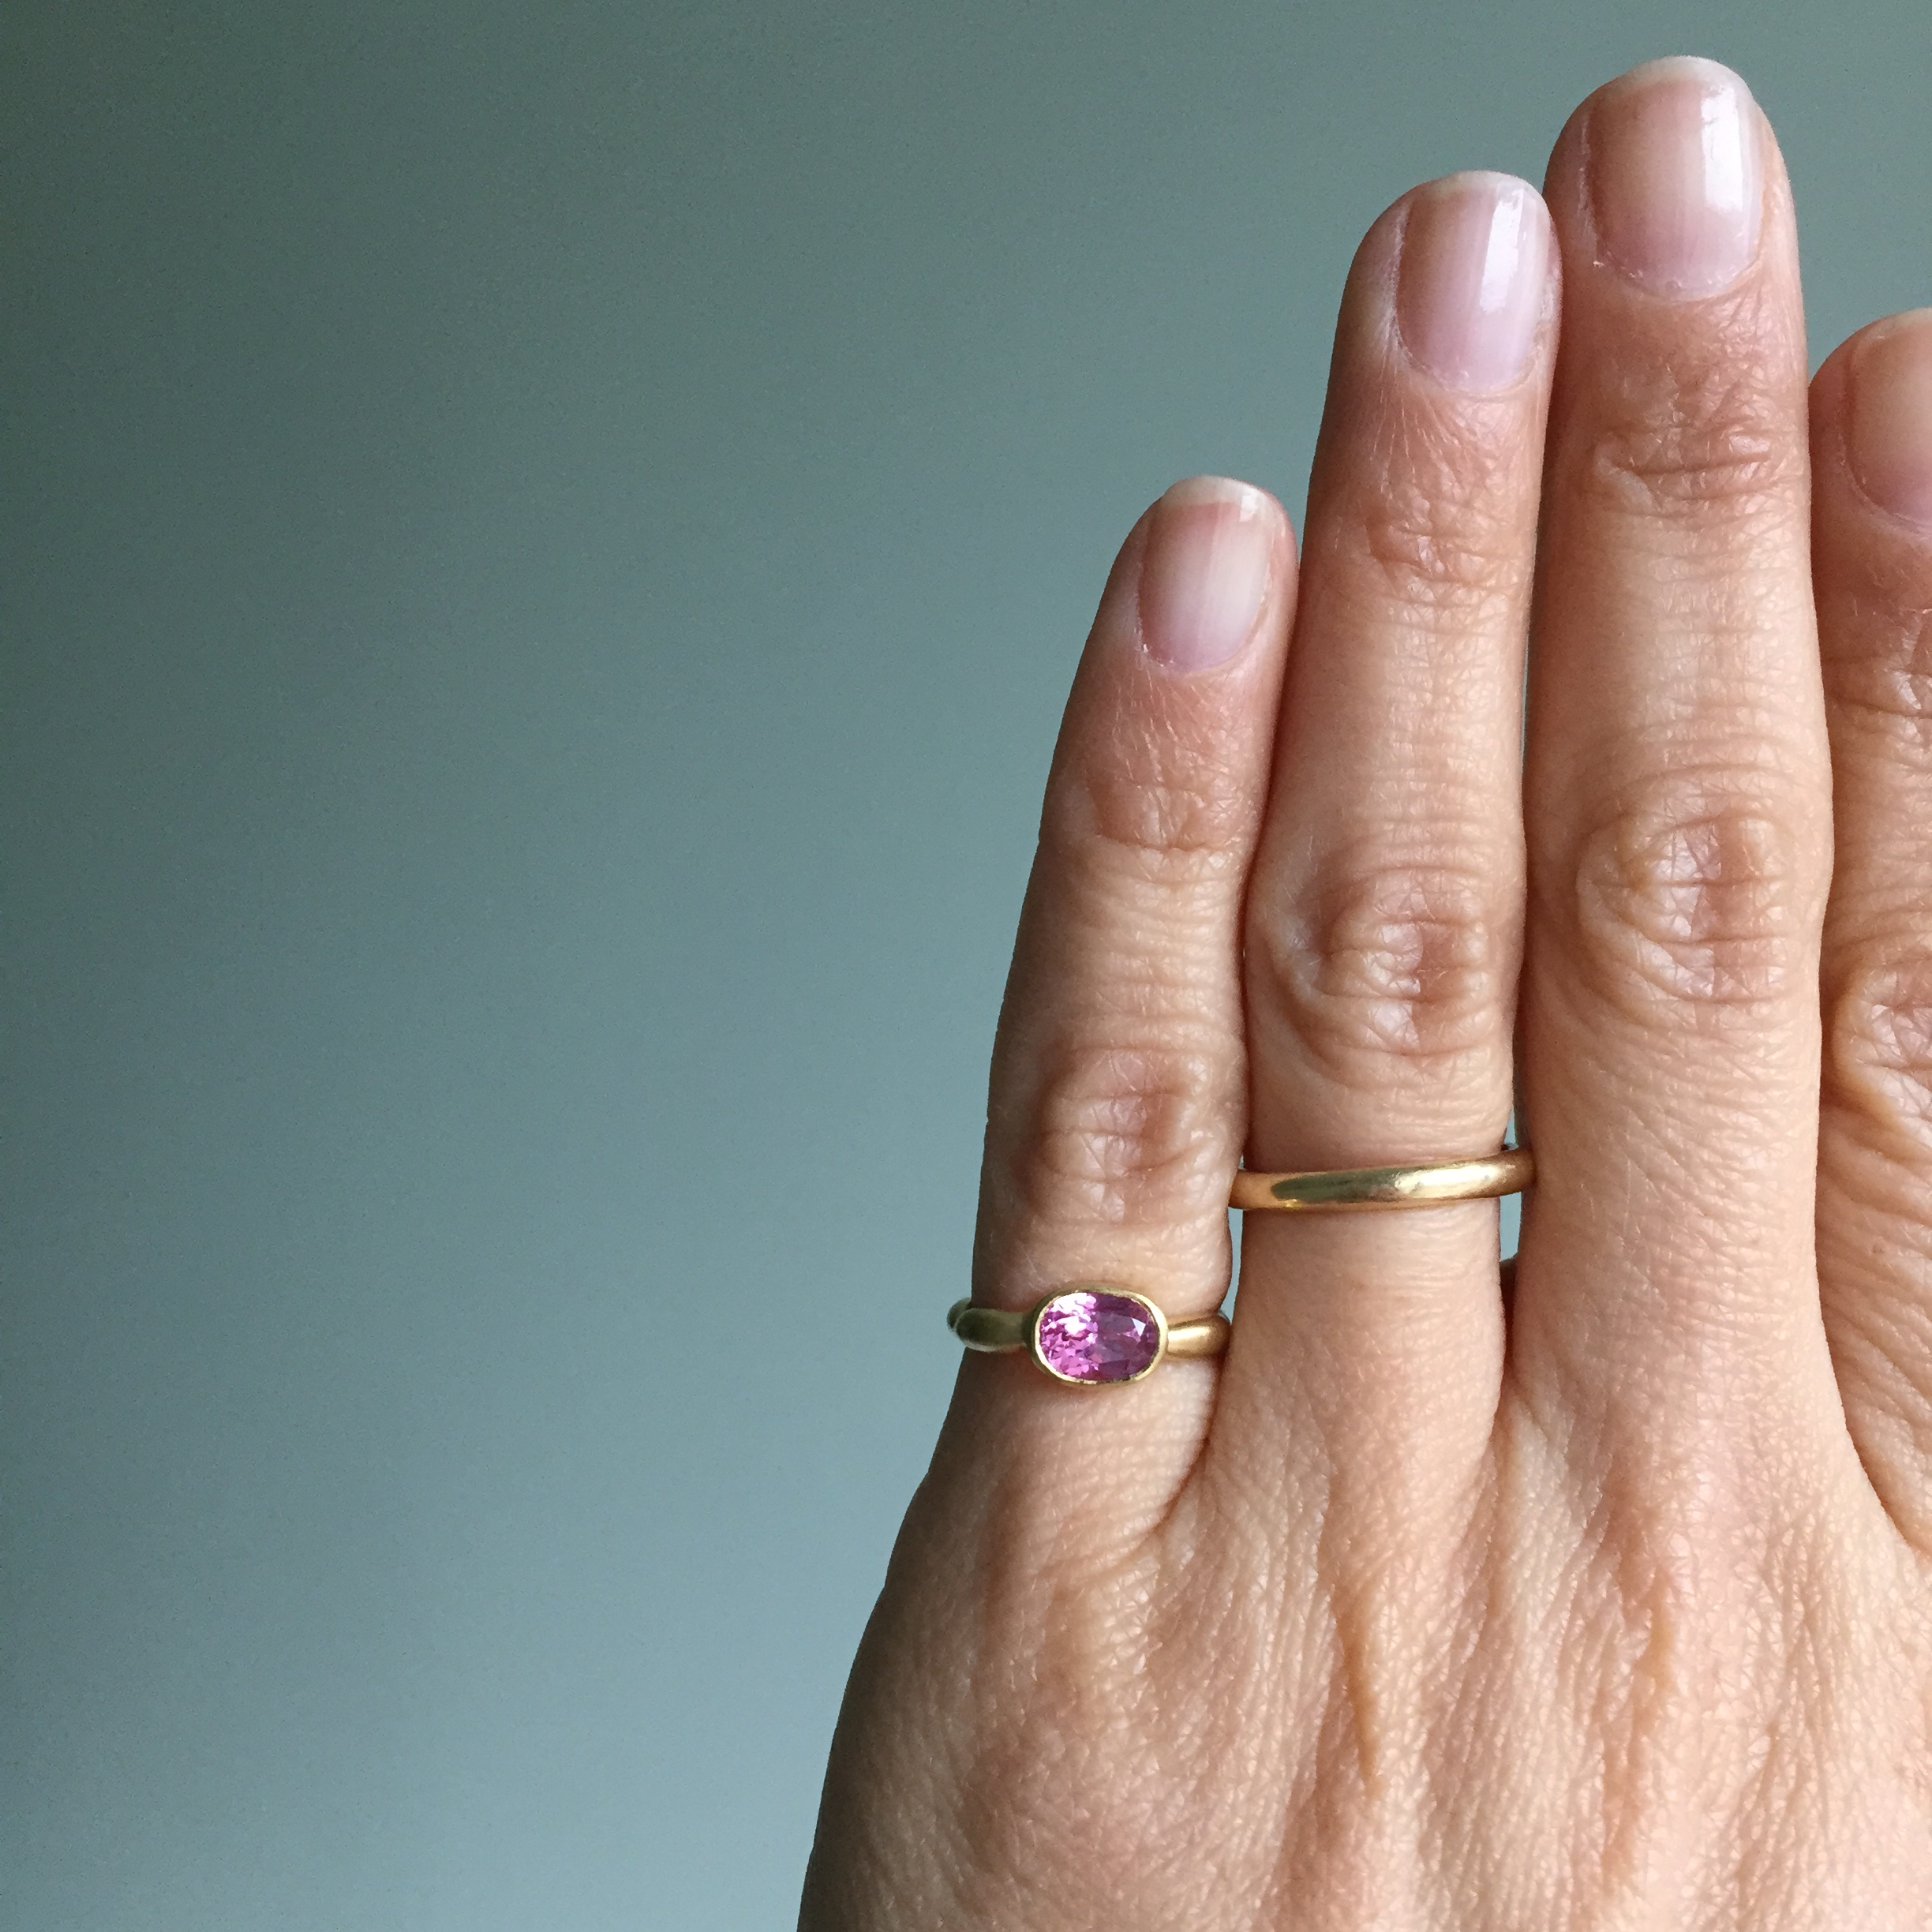 I made this ring with a pink sapphire that was a gift from my grad school professor. I wear this one on my pinky. No pun intended.